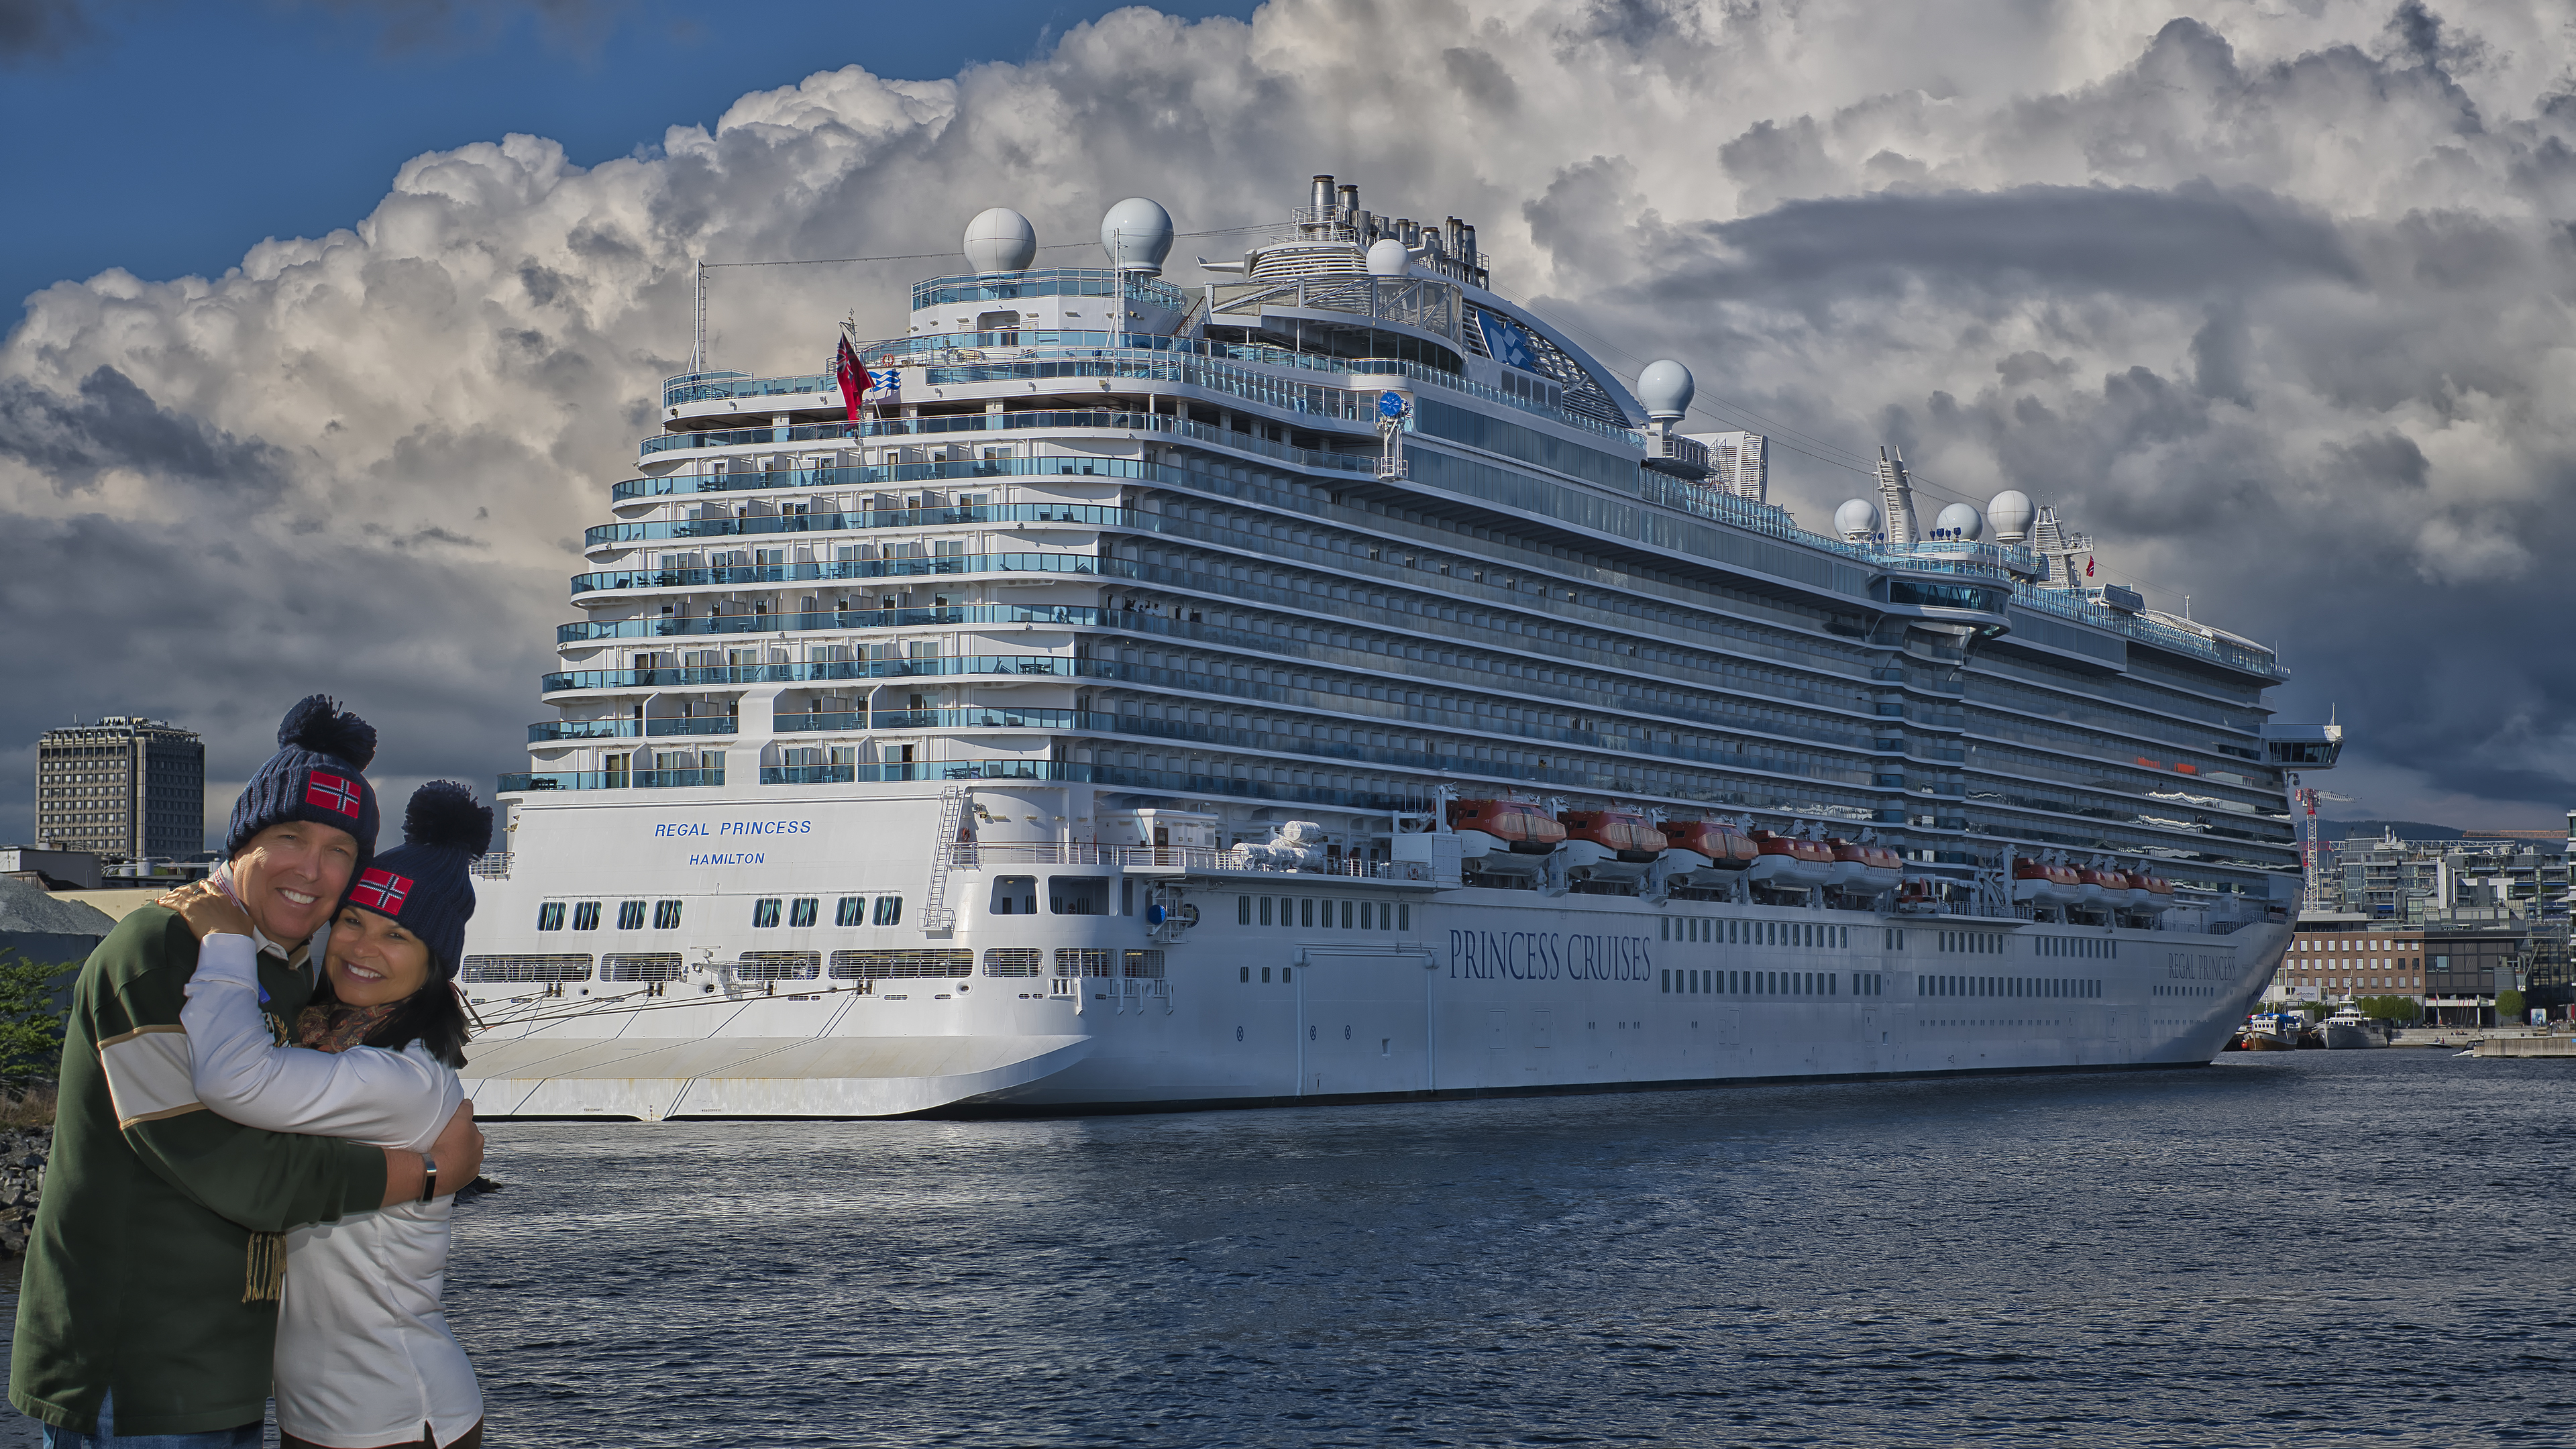 In Oslo with the Regal Princess